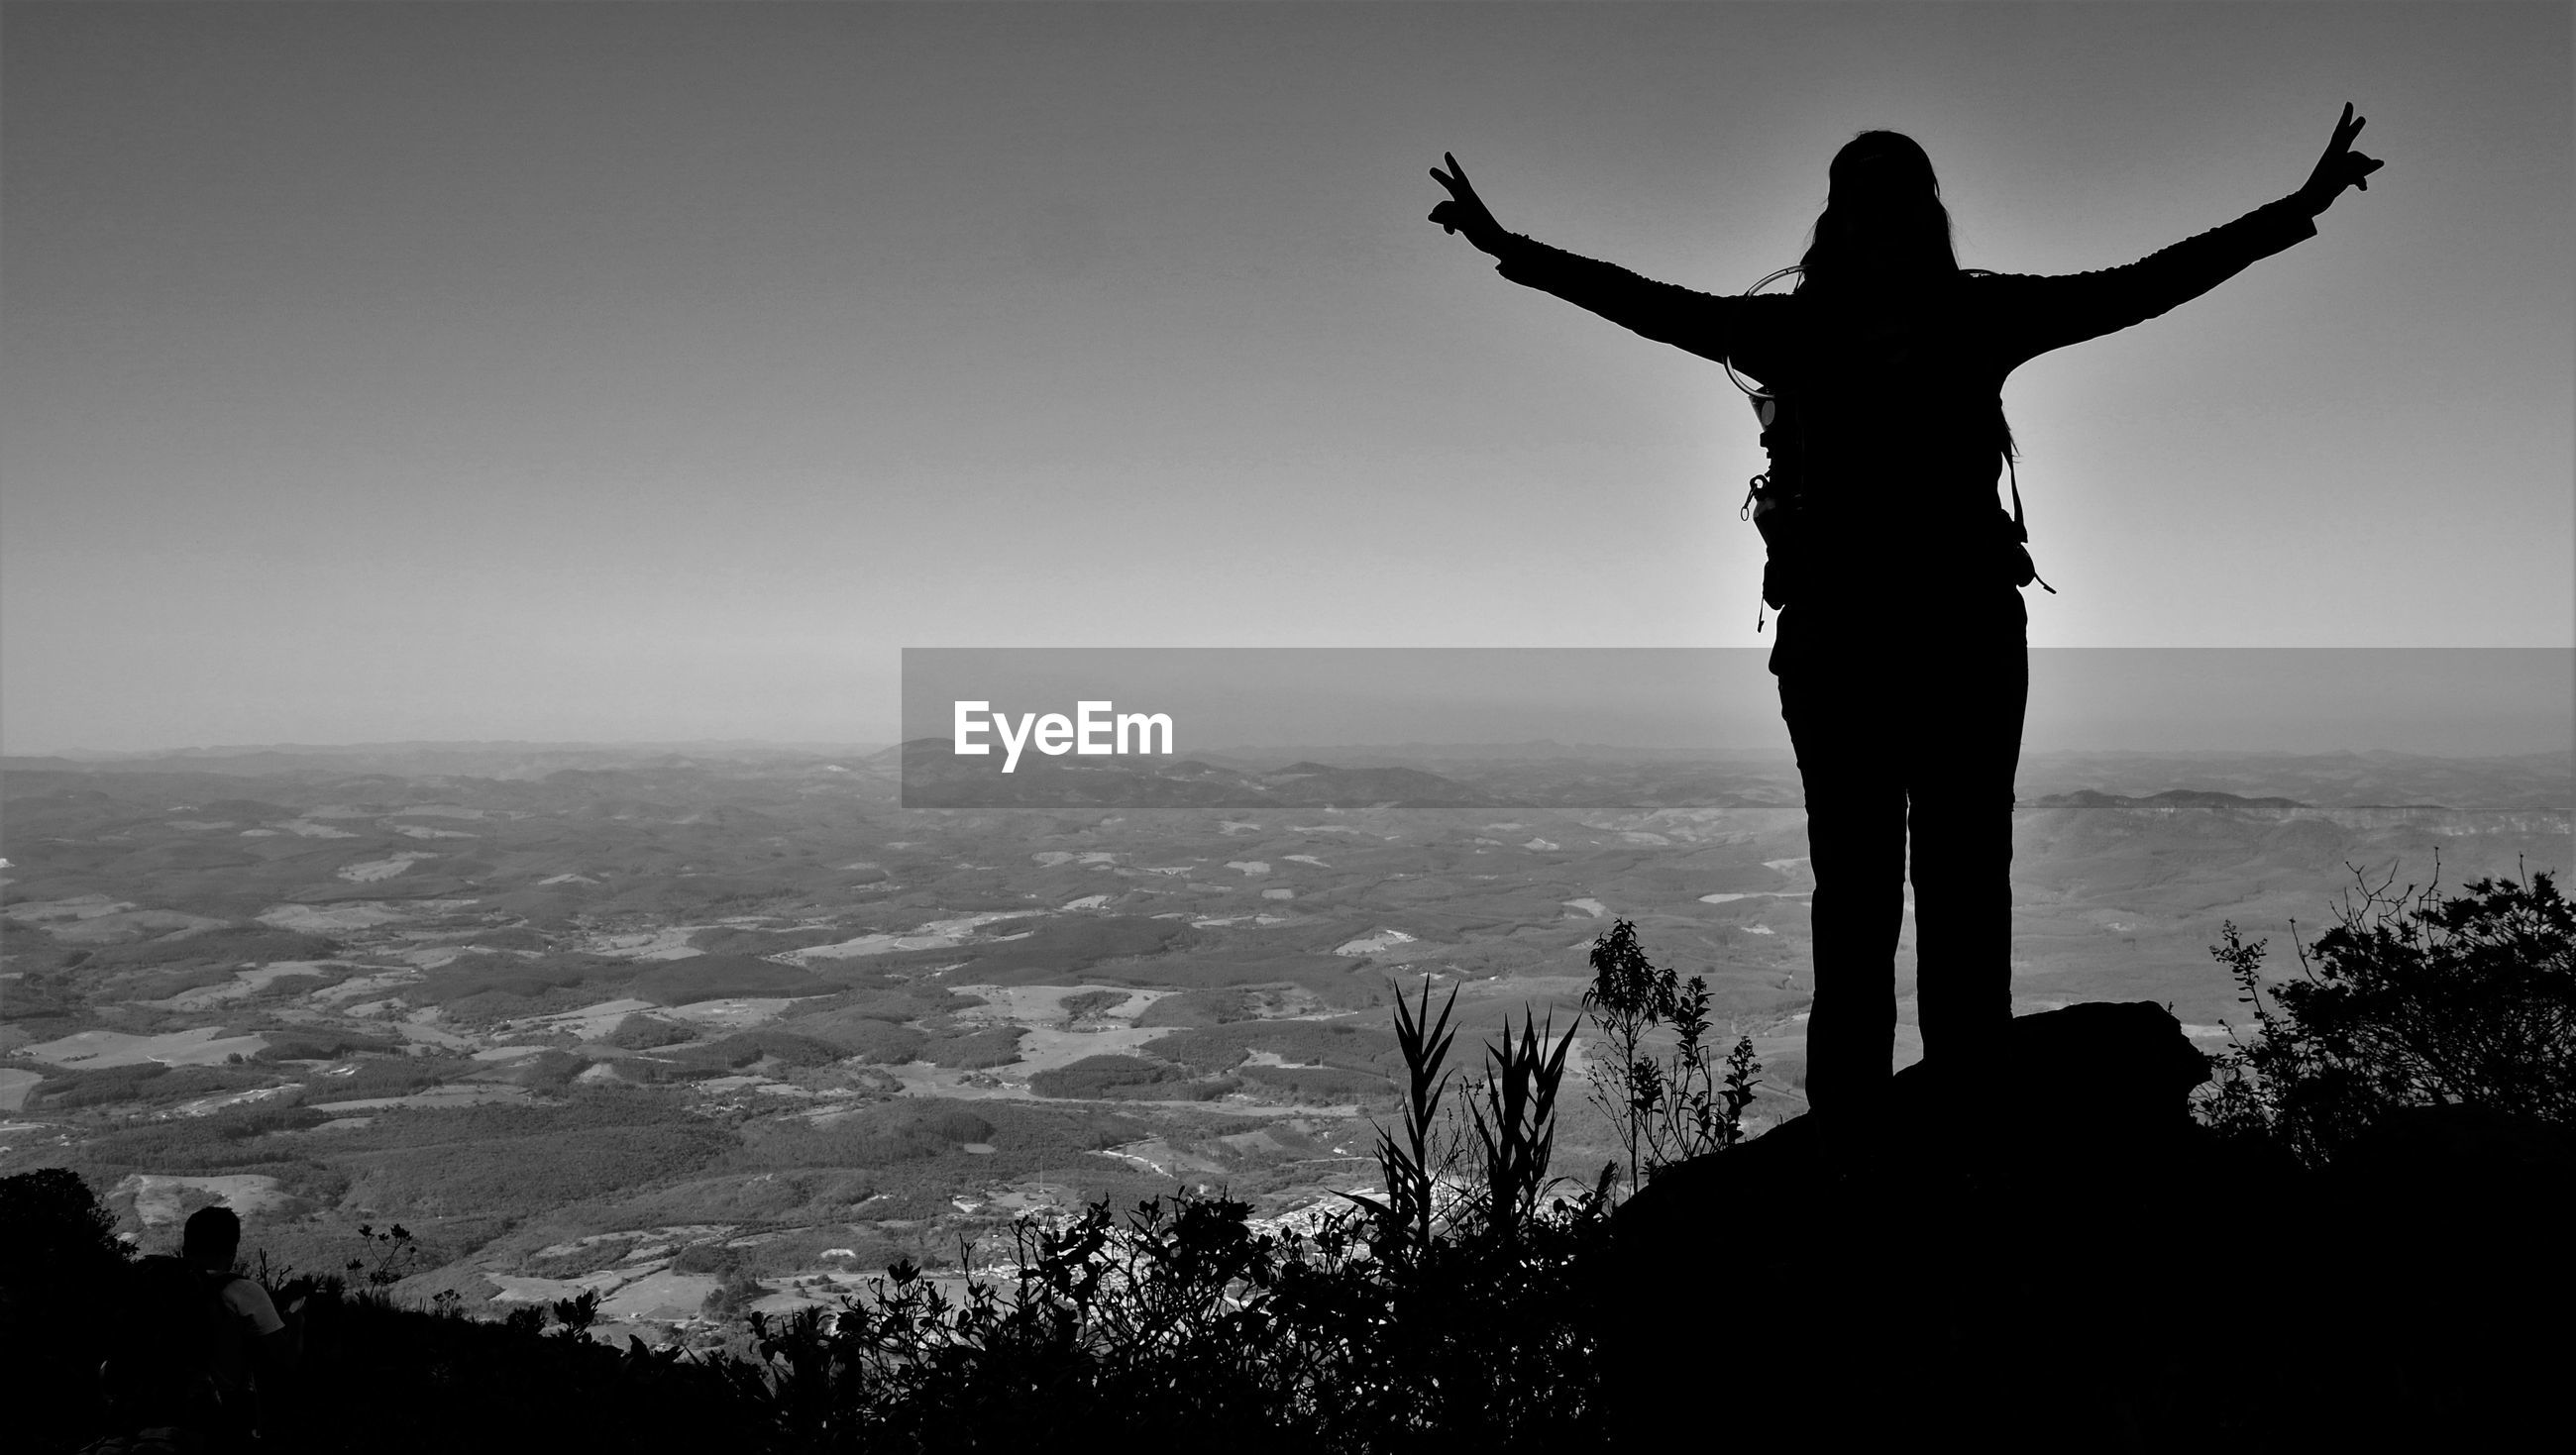 Silhouette person with backpack standing with arms outstretched on mountain against sky